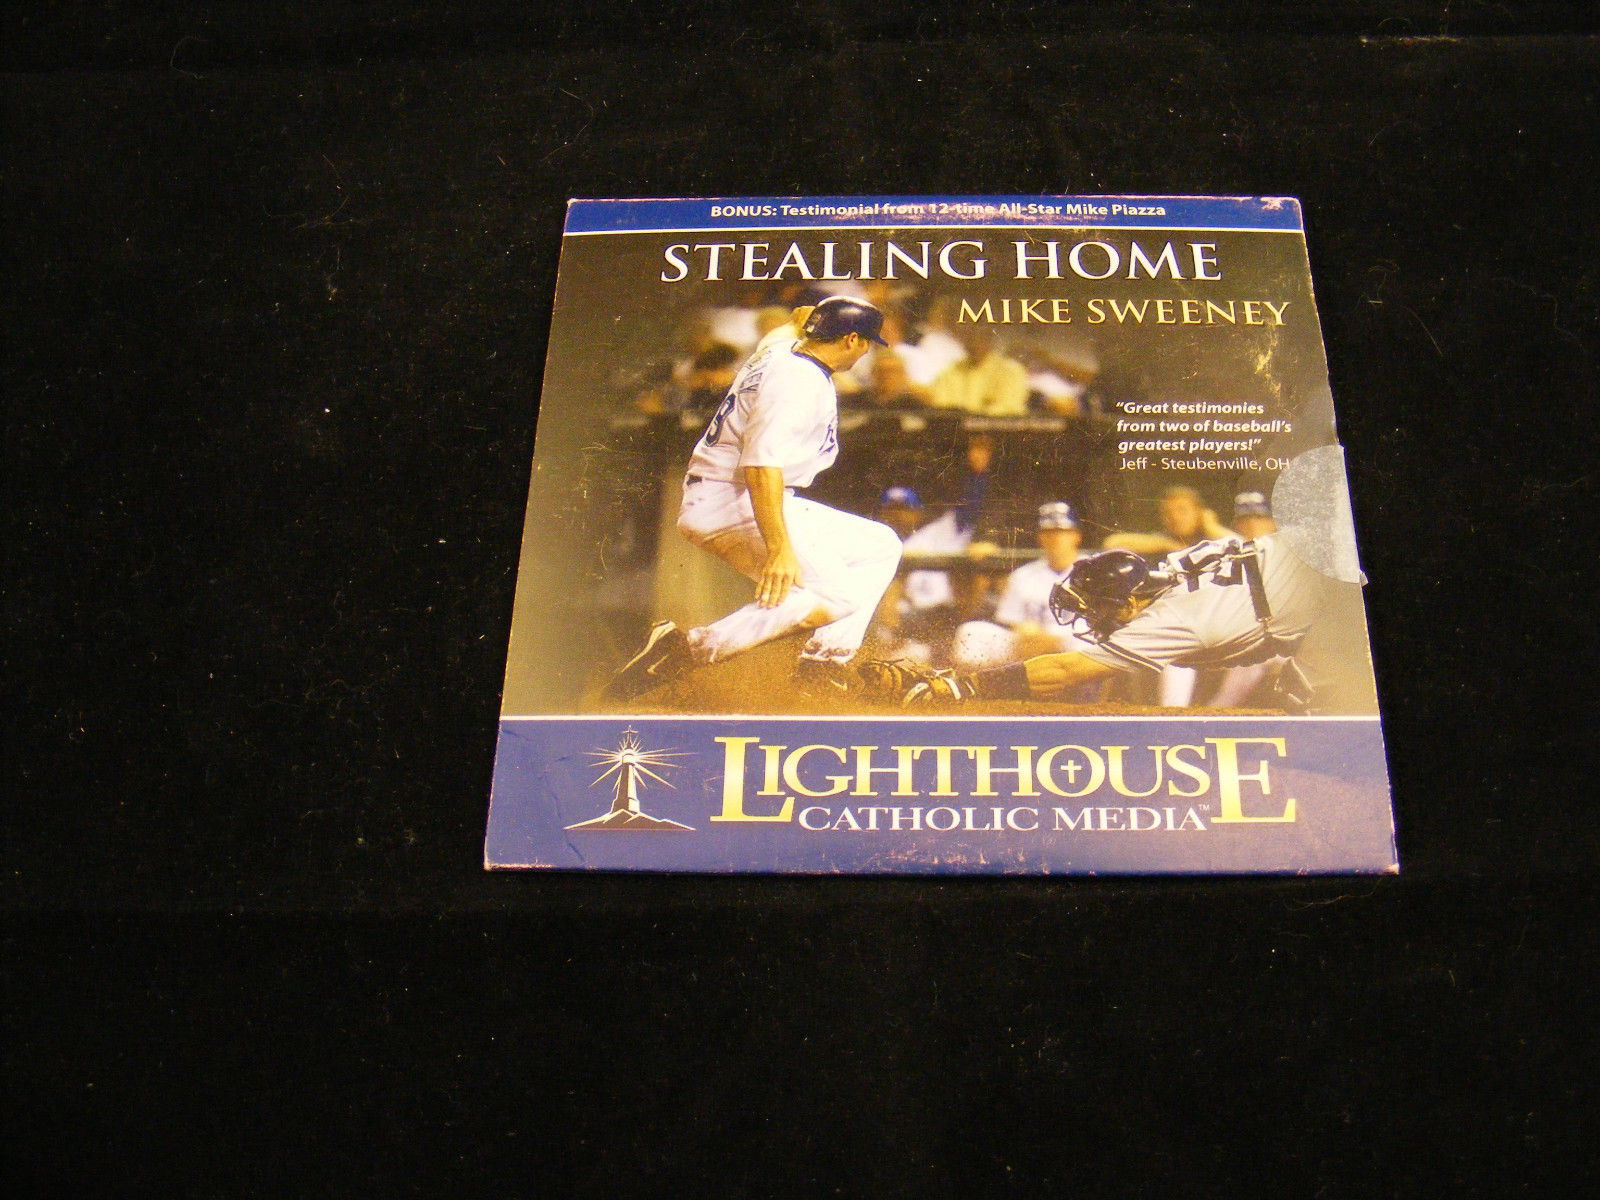 Primary image for Stealing Home Mike Sweeney CD AUDIOBOOK - Lighouse Media  -Religious